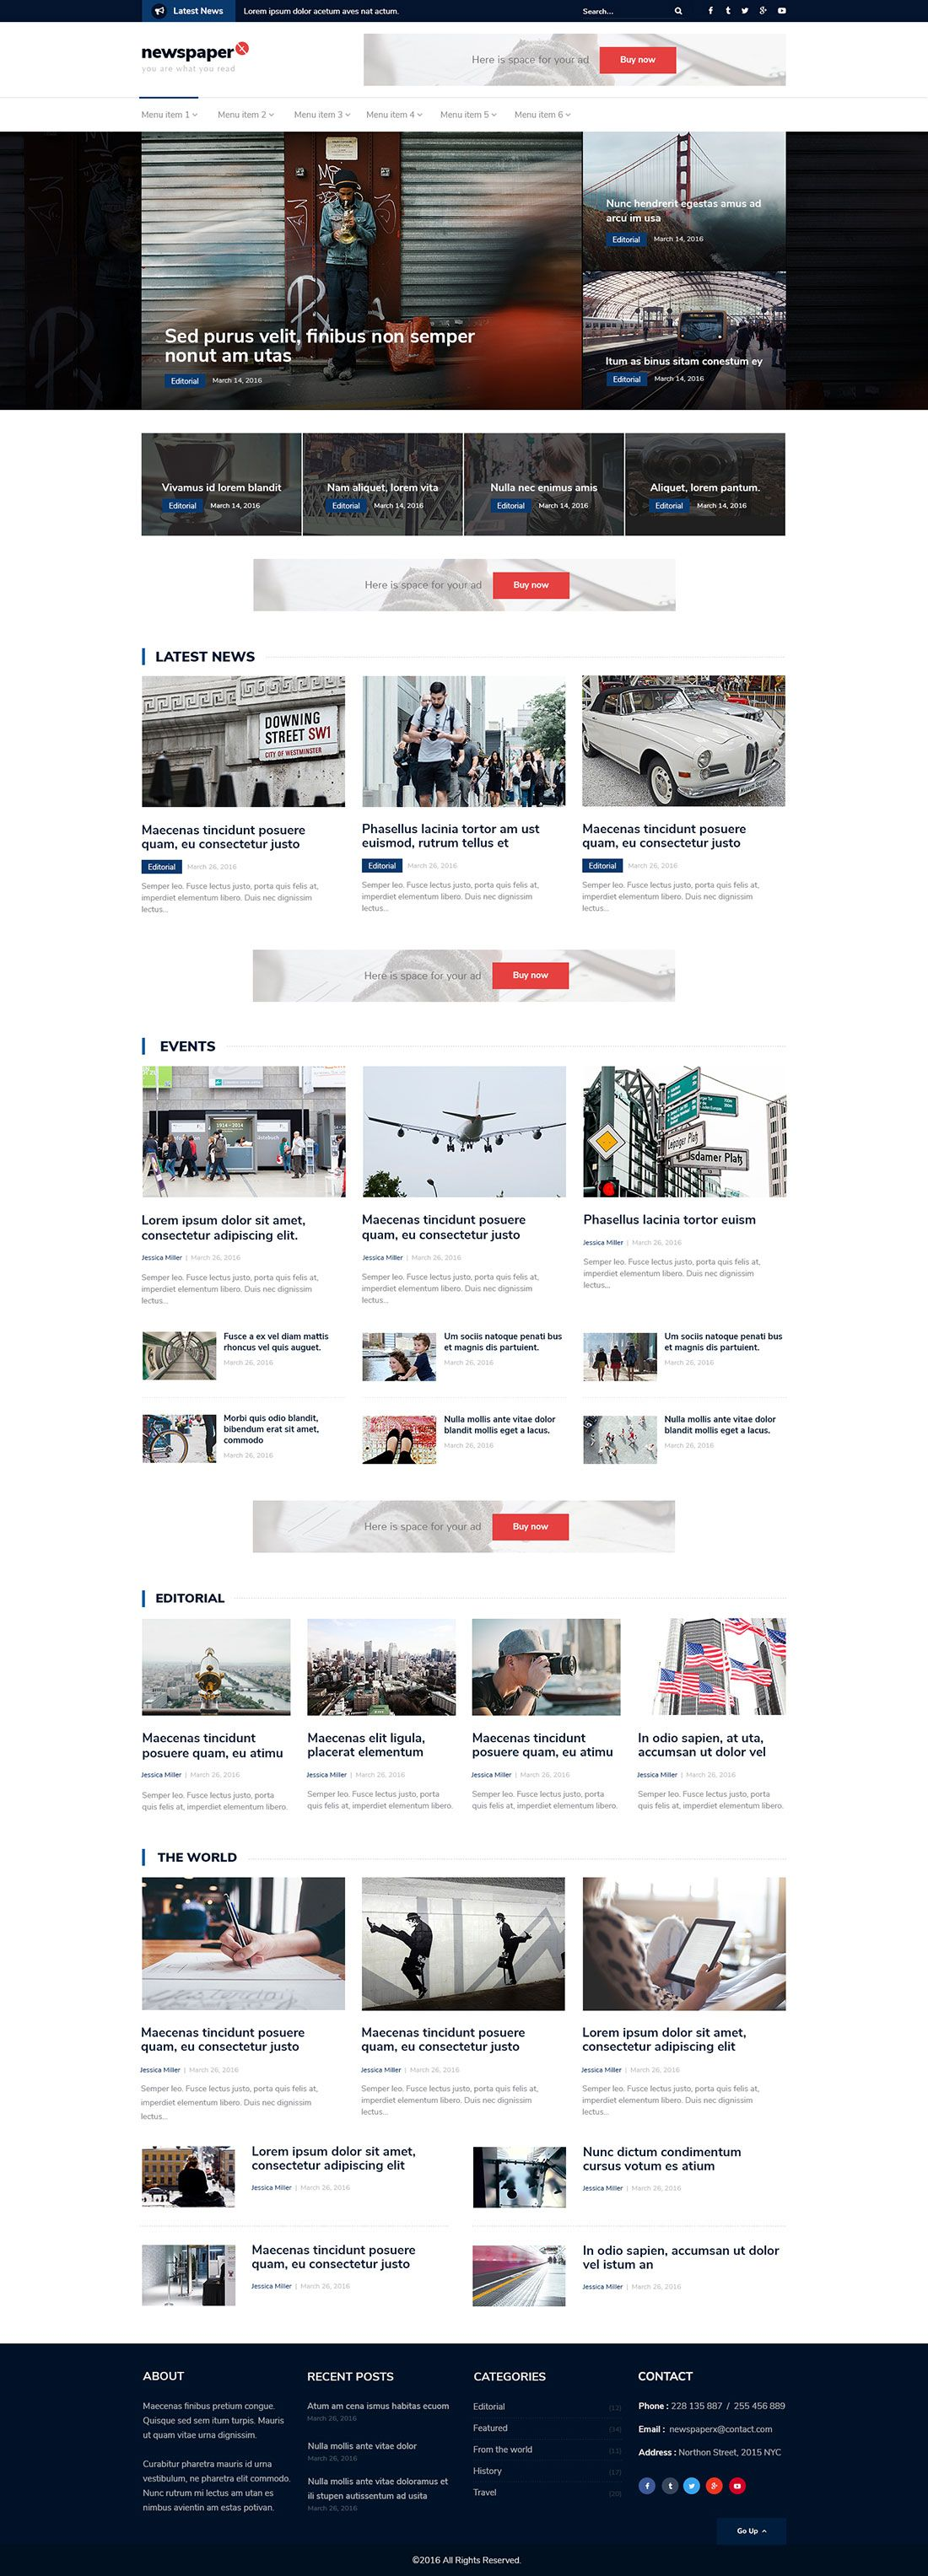 Newspaper X Popular Magazine Wordpress Theme Colorlib Free